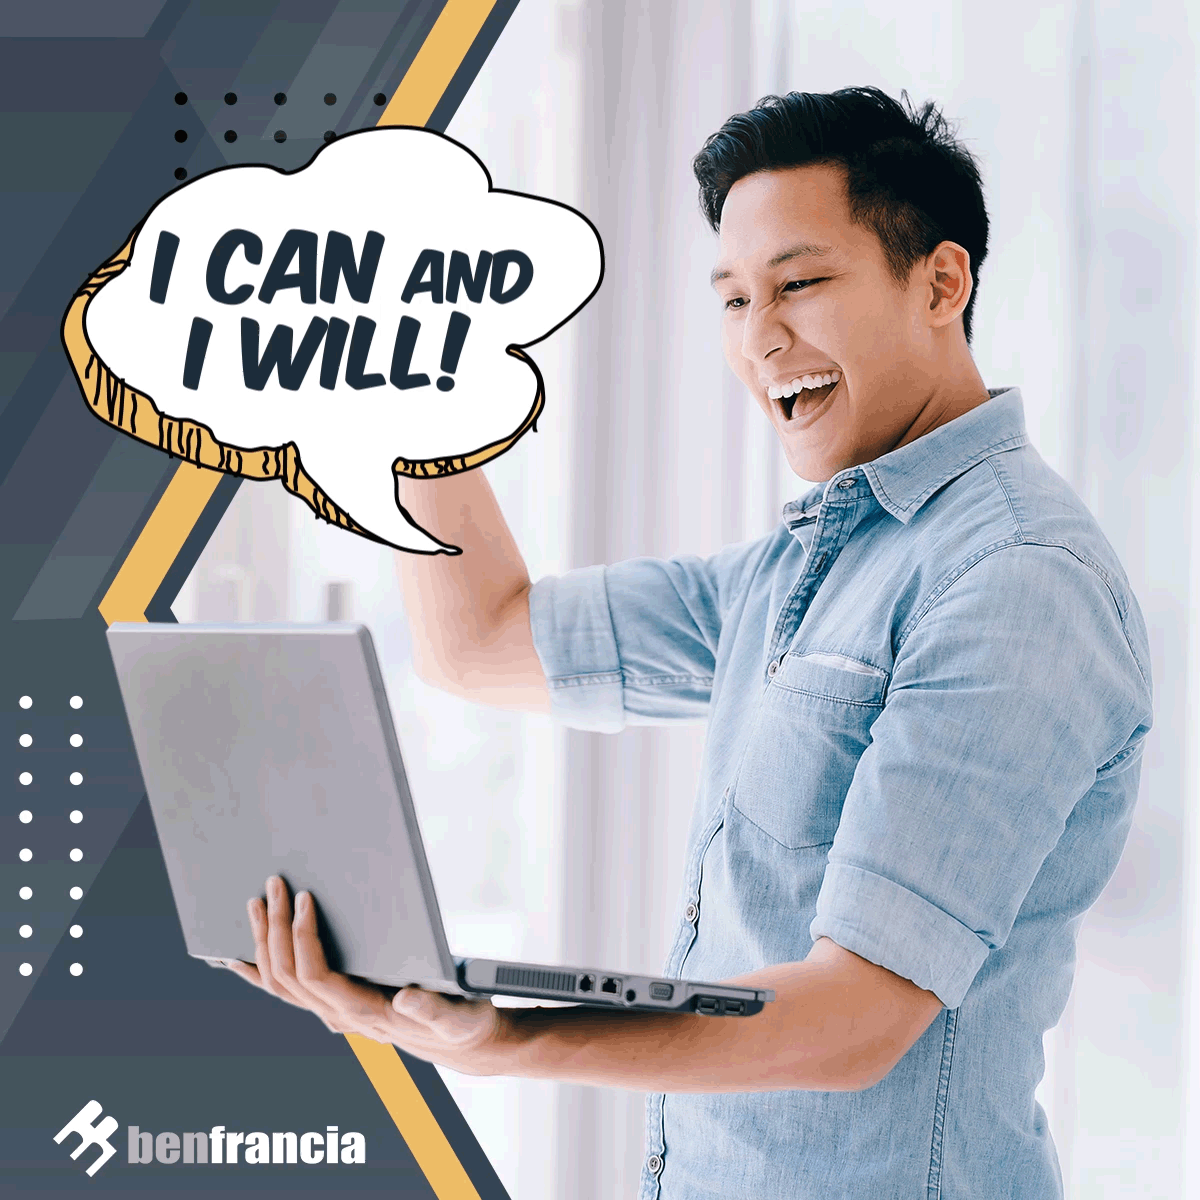 The first step to achieving your goals is by believing that you can do it.   Learn more: https://t.co/q2p8AZCELj  #MakeItHappen #DigitalMarketing #DigitalMarketingTips #DigitalMarketingPH https://t.co/7d6rJqRmJT